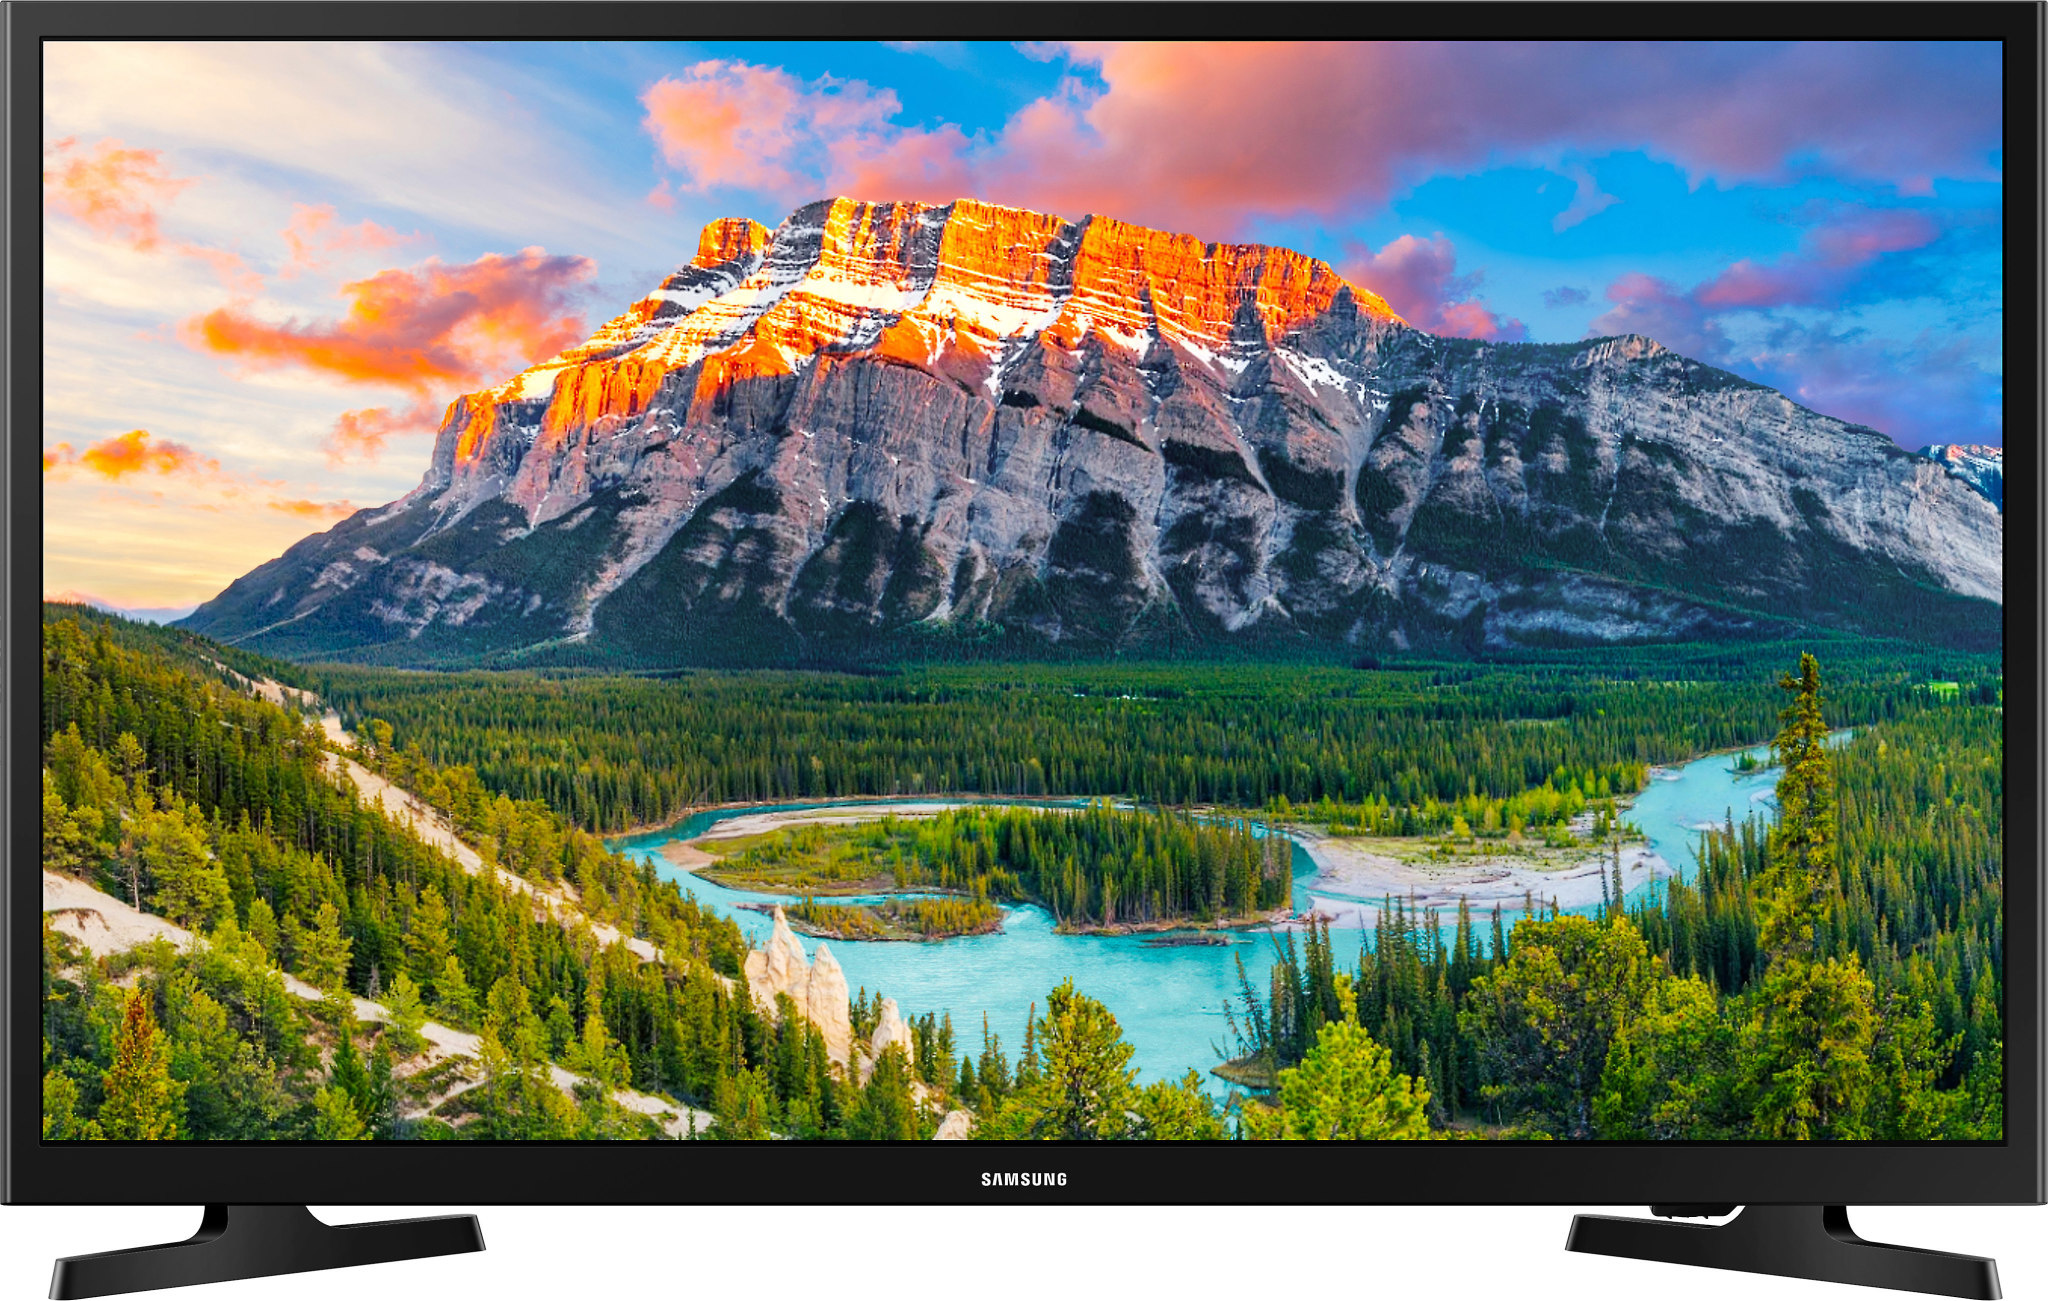 "Samsung Samsung 32"" UN32N5300 1080p HD Smart TV"